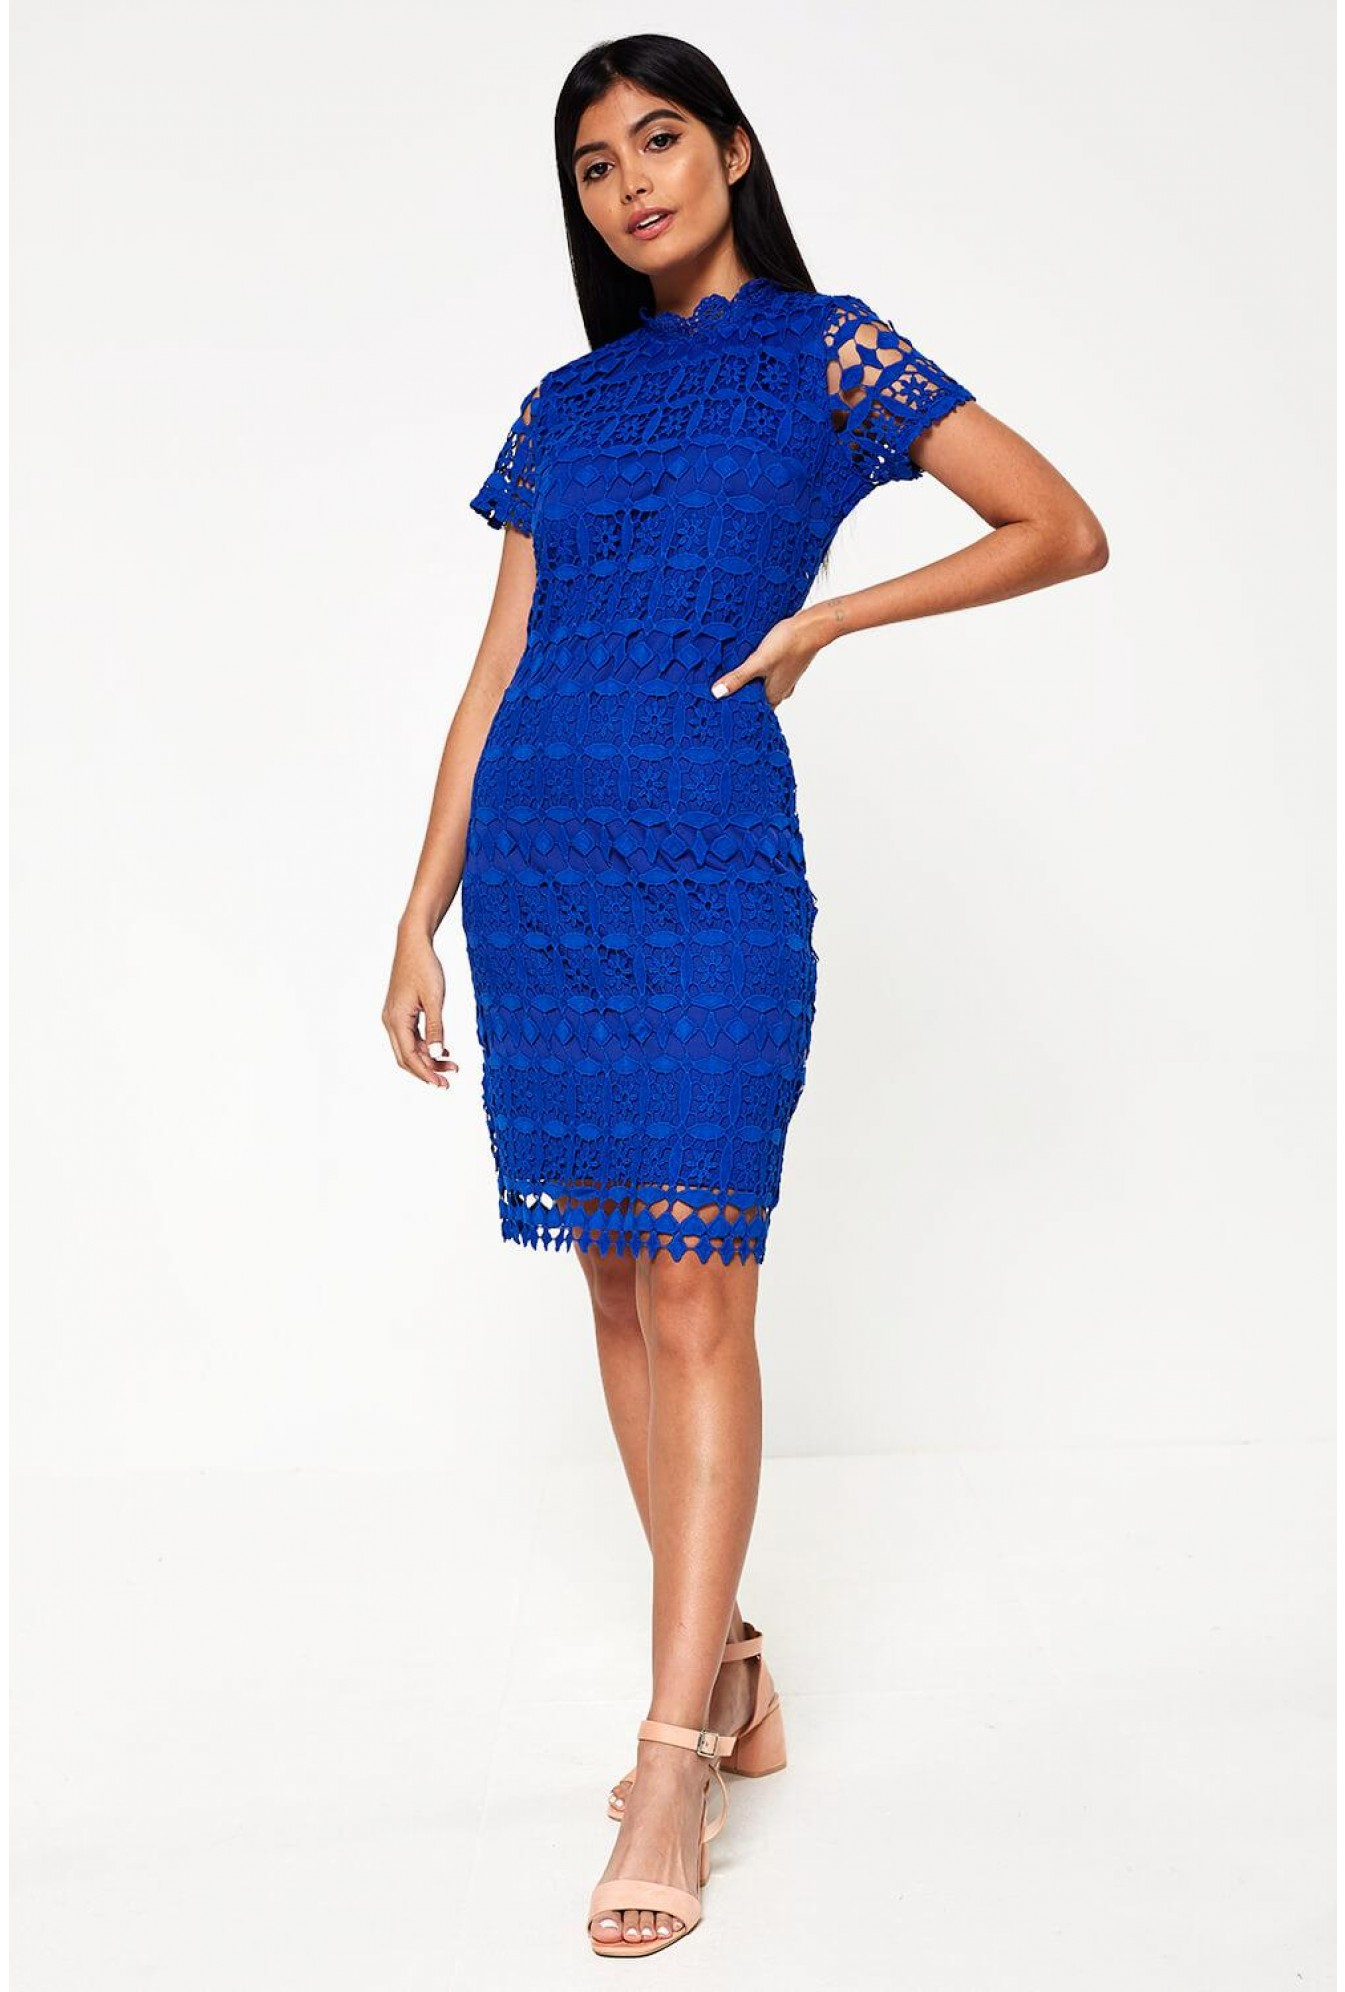 08373e35fce Marc Angelo Bowery High Neck Lace Pencil Dress in Royal Blue